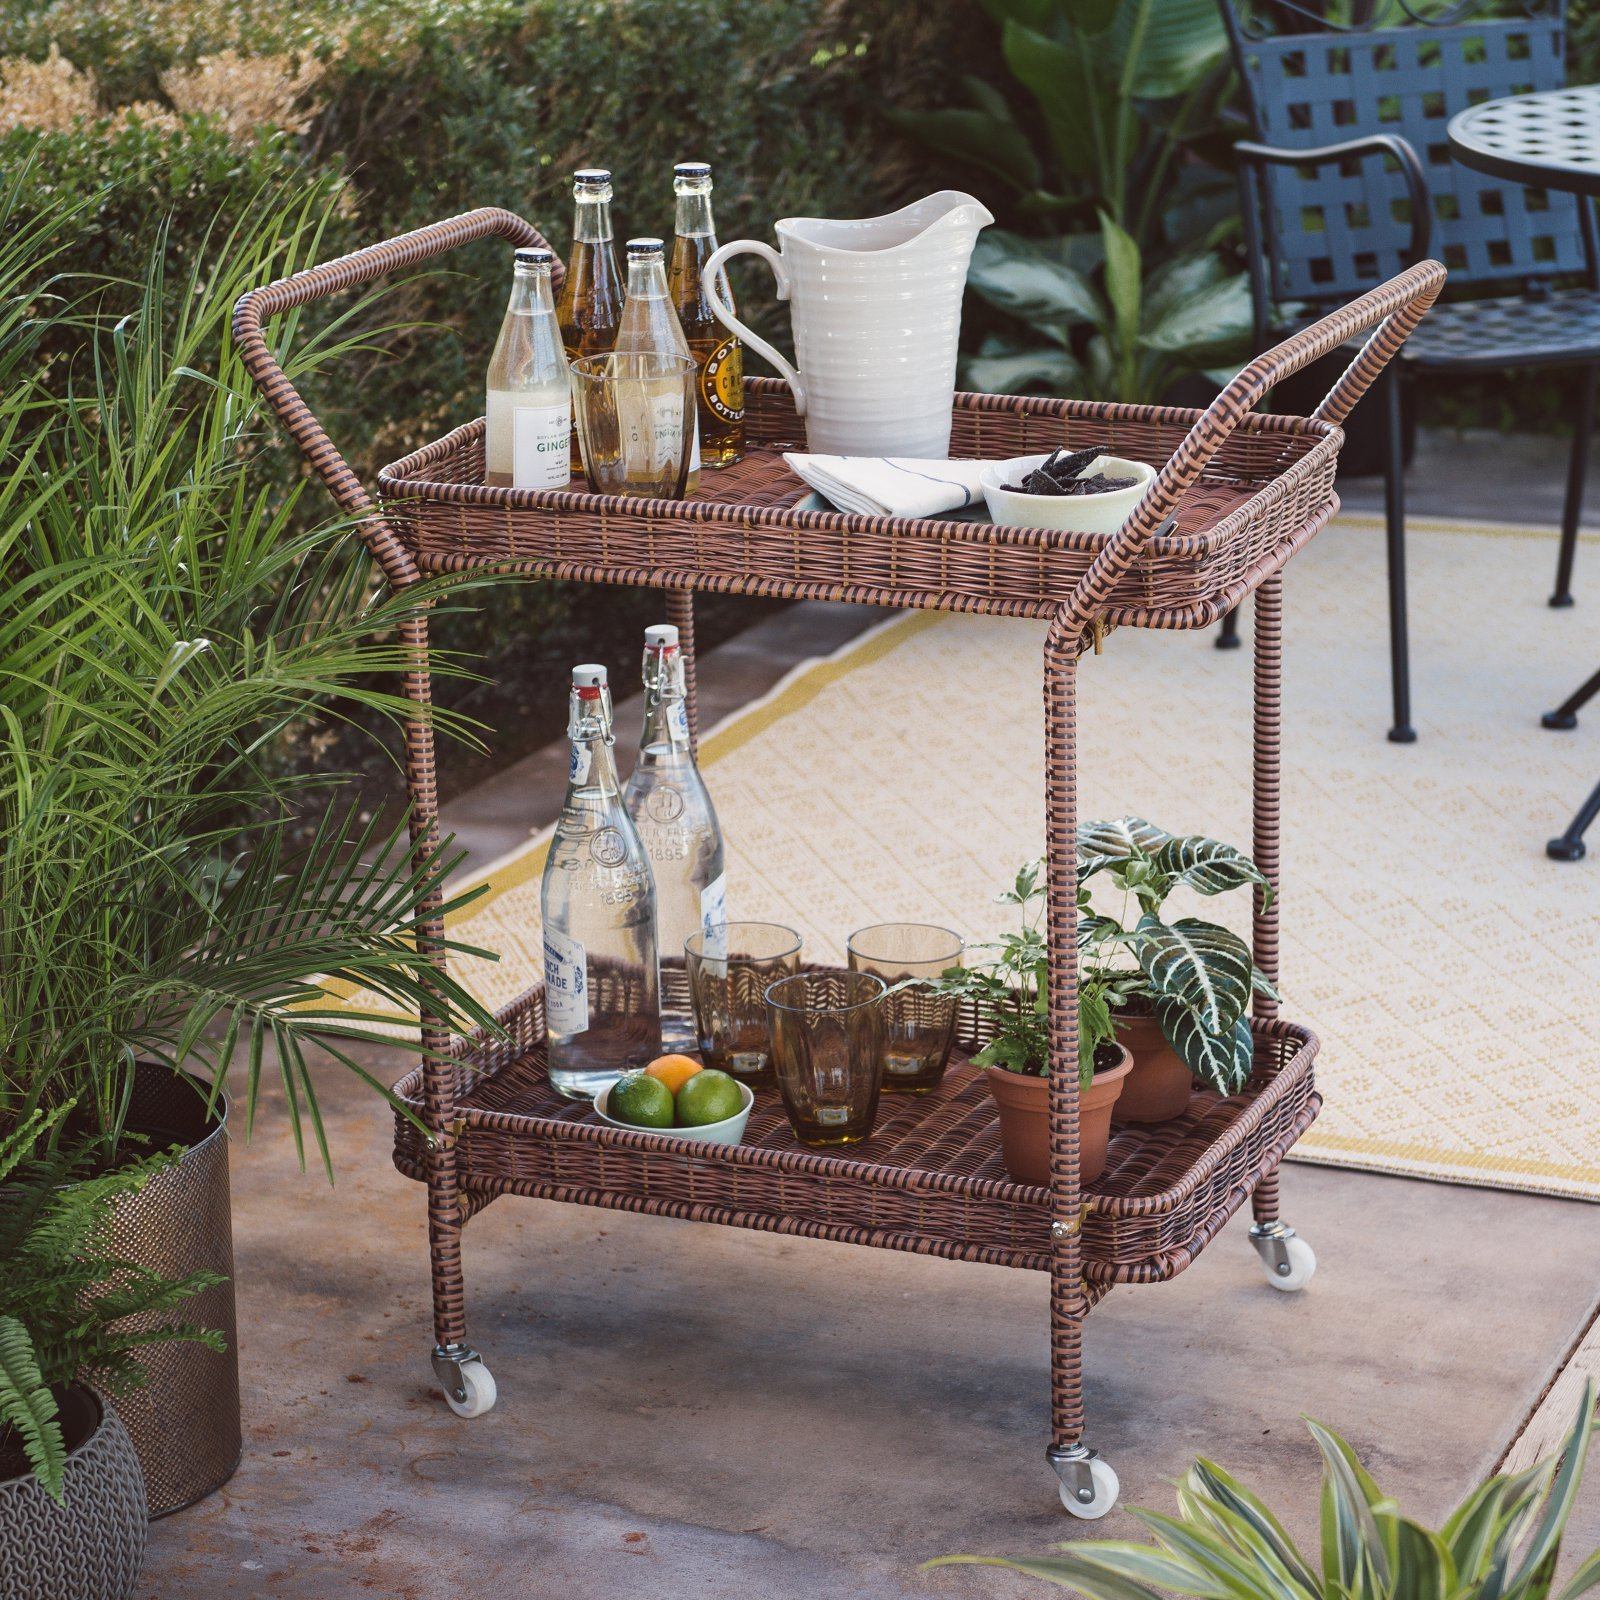 Home Improvements Tonal Brown Resin Wicker Outdoor Patio Portable Bar Cart 2 Tier Grilling Serving Cart